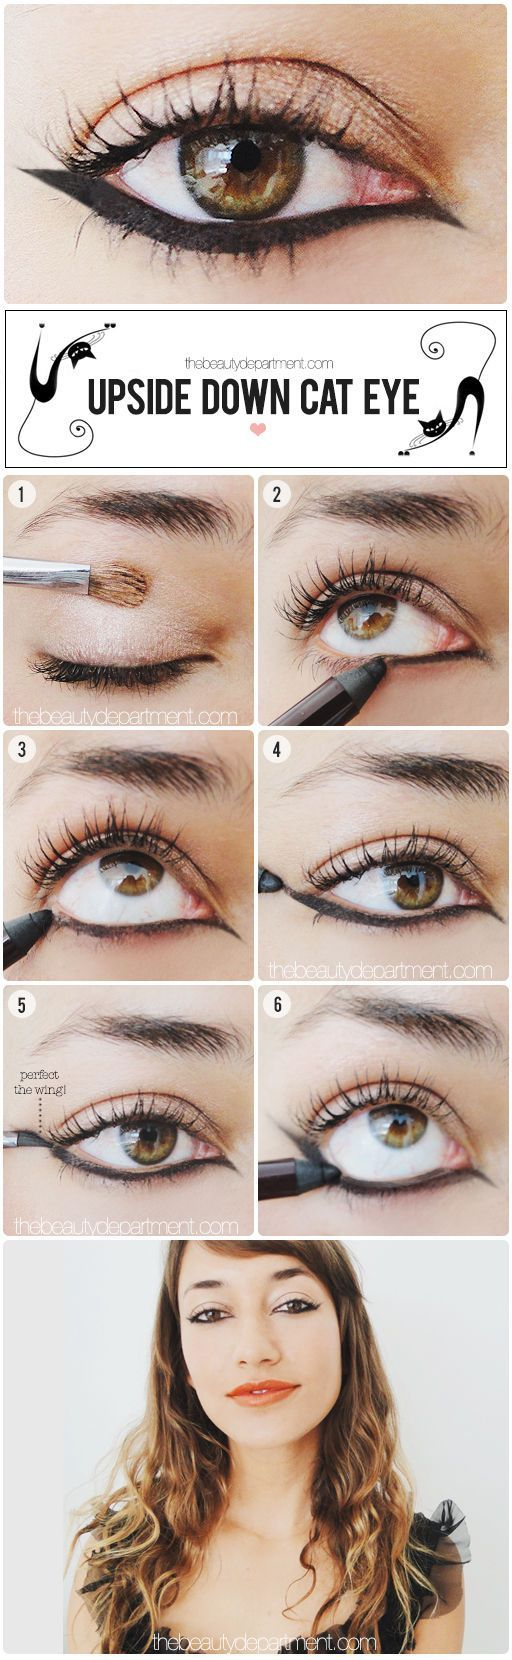 Upside Down Cat Eye How-To. Try something new! #eyeliner #beauty #makeup